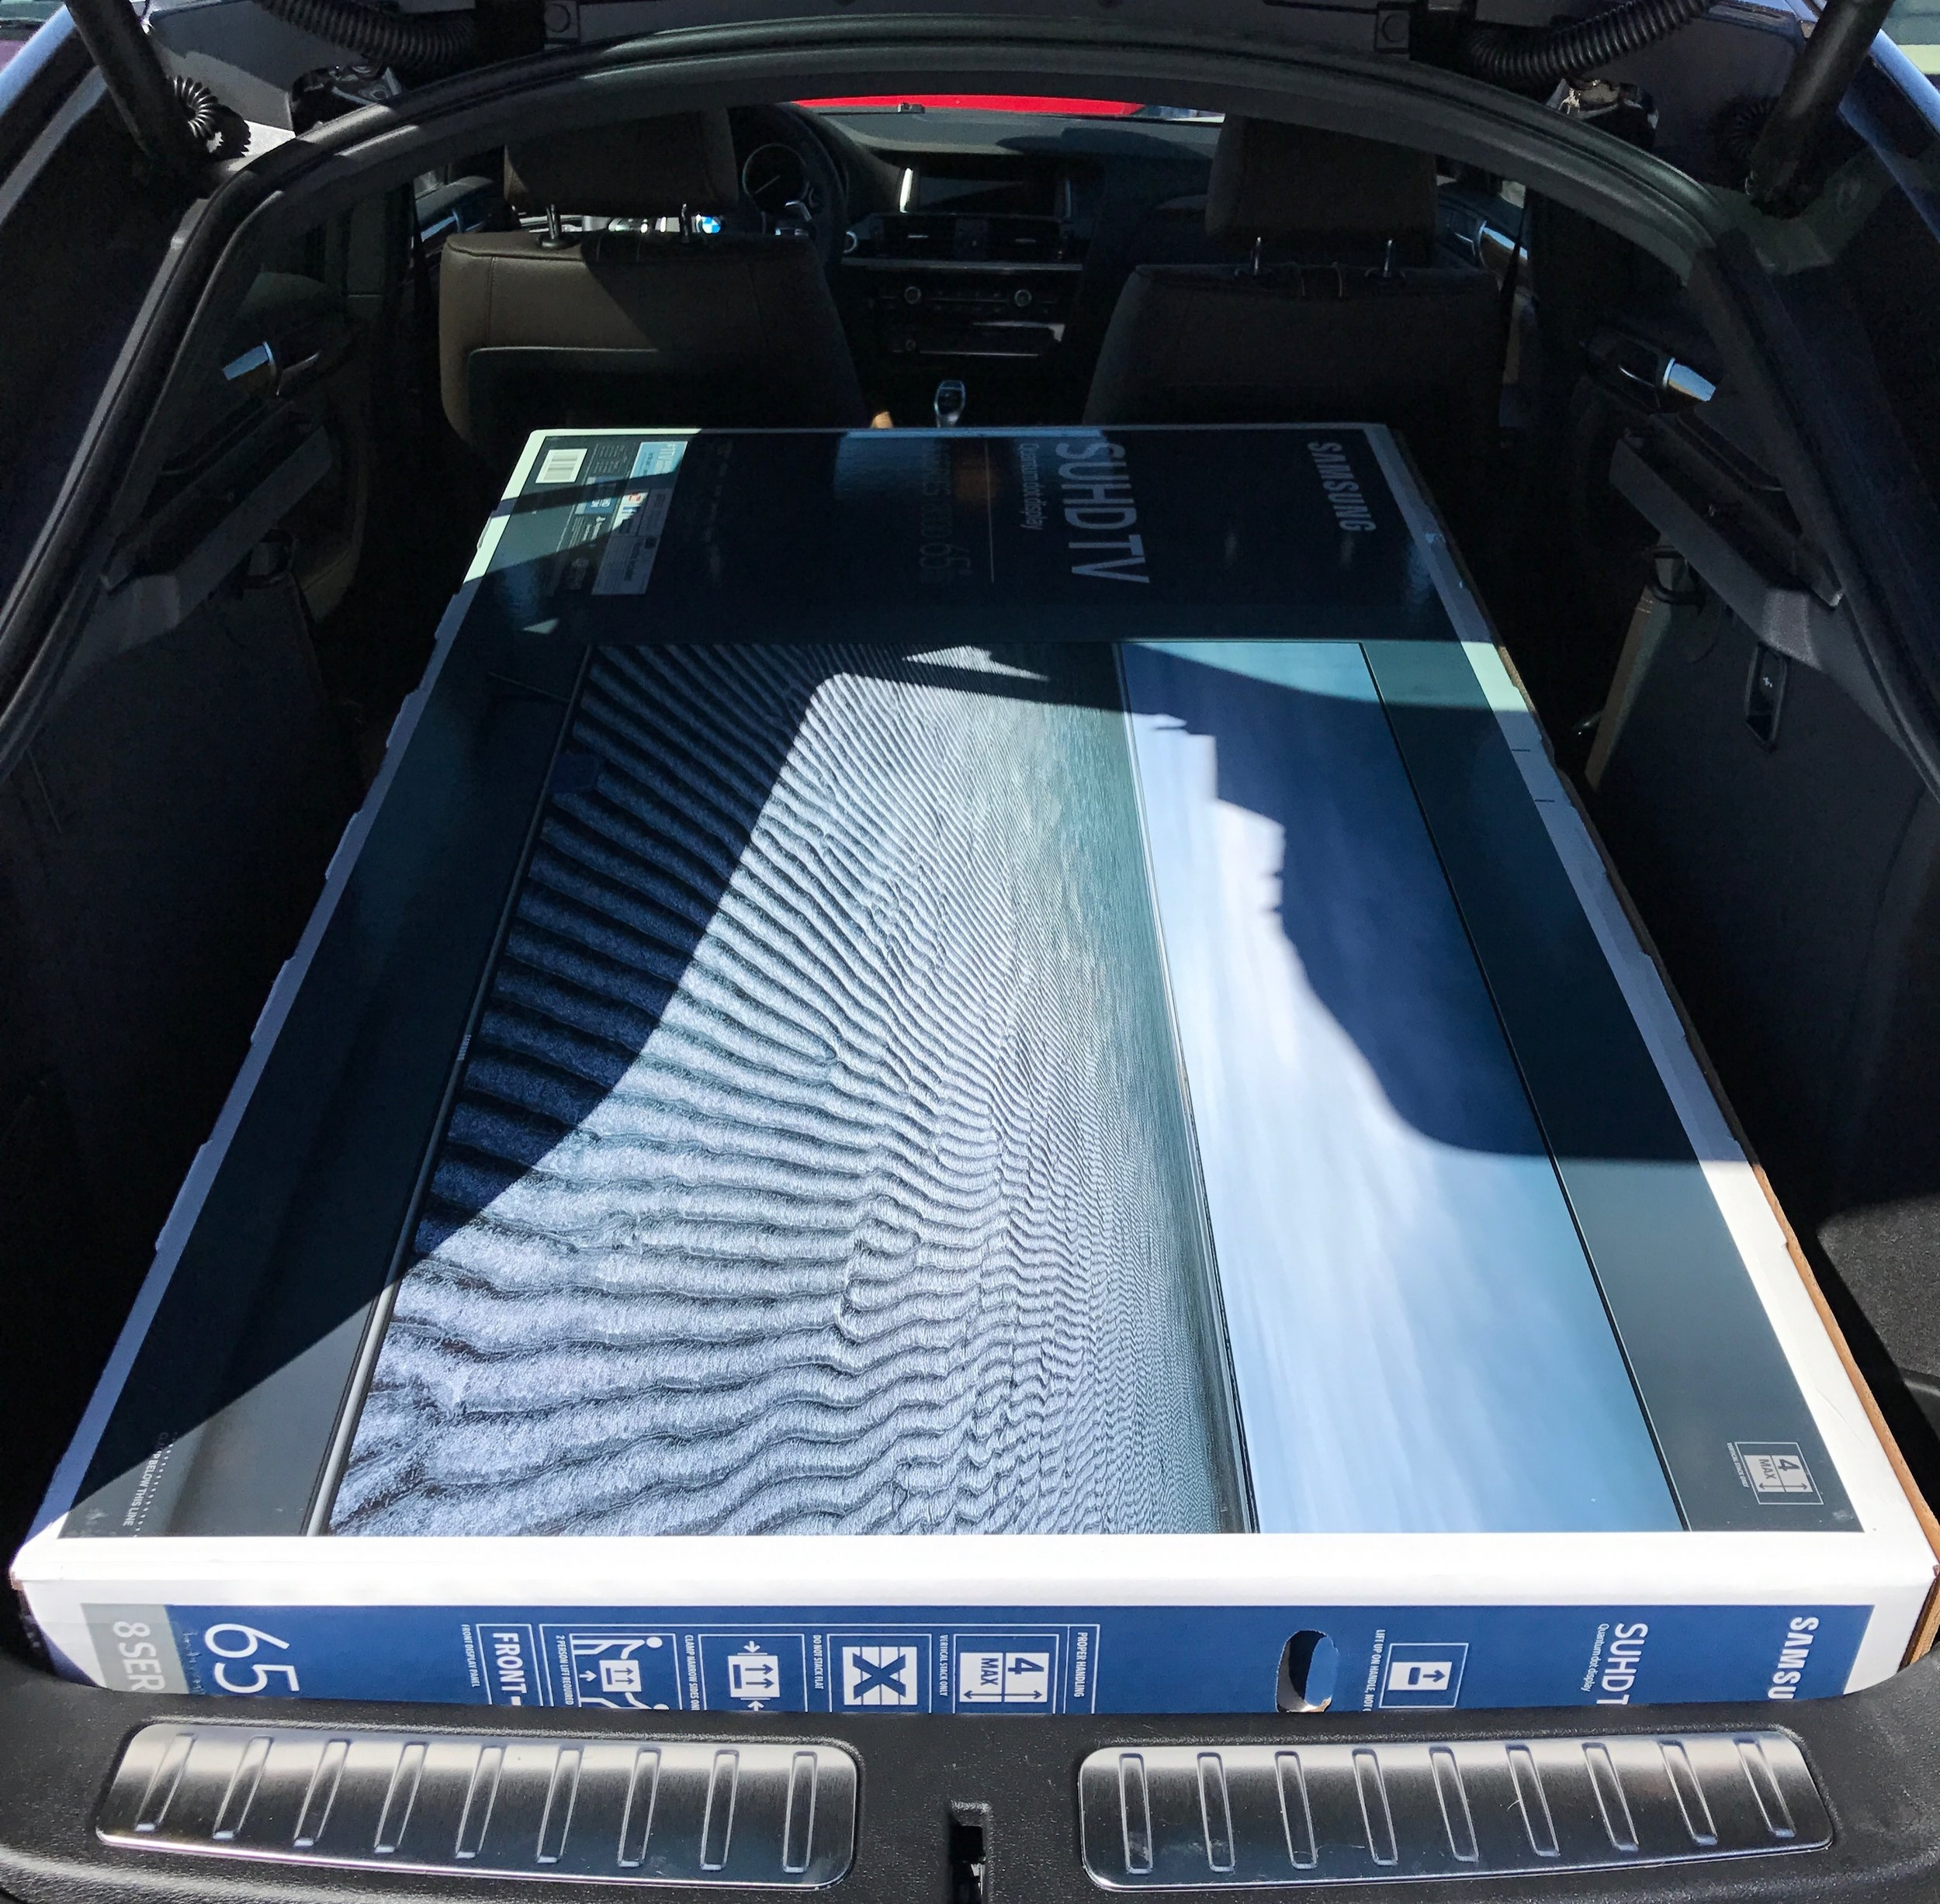 The M40i swallows massive boxes for purposes of load testing.